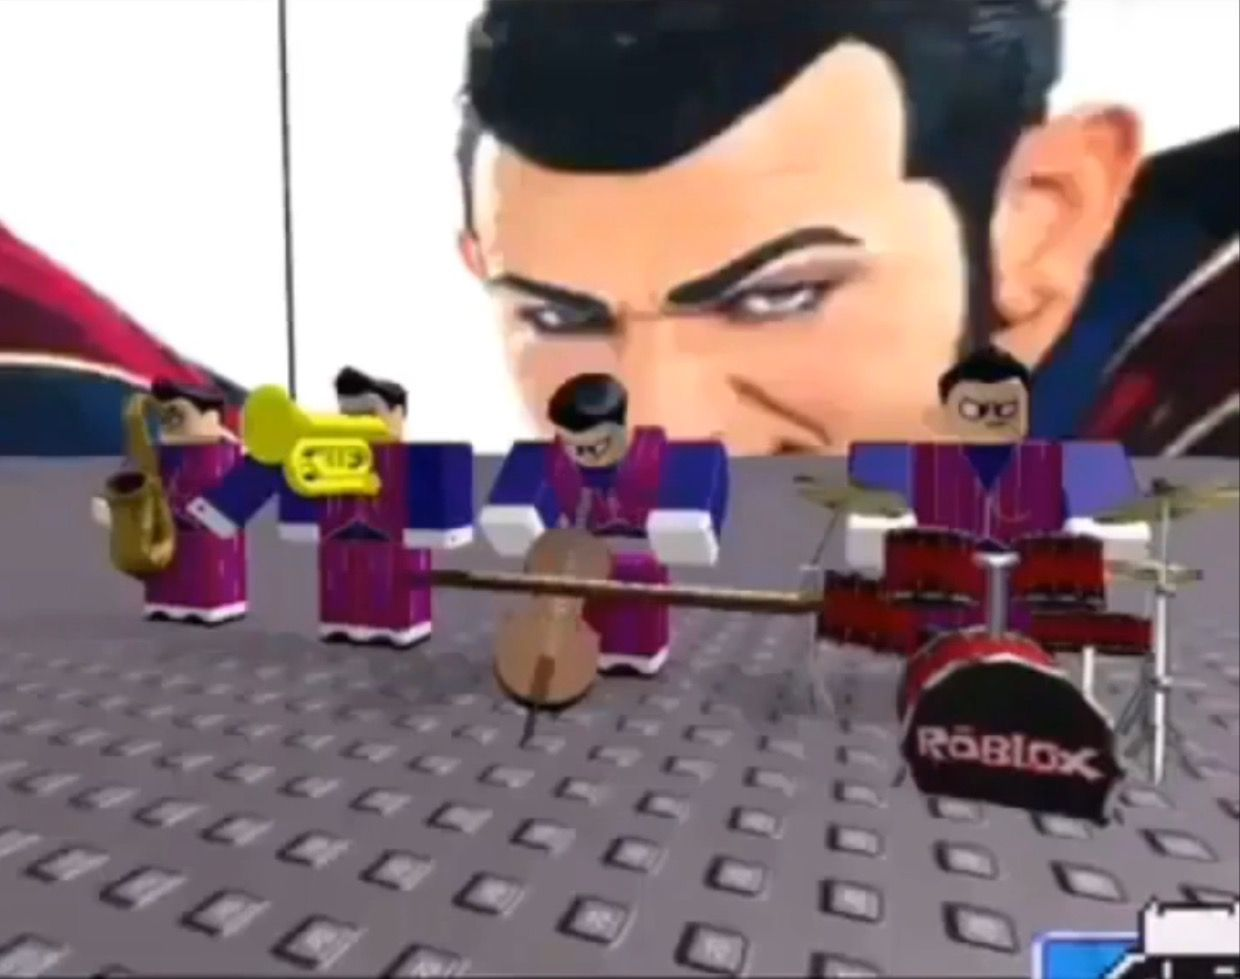 Roblox Memes Rock - Only Real Rock N Roll Fans Know Who They Are Arti Choke